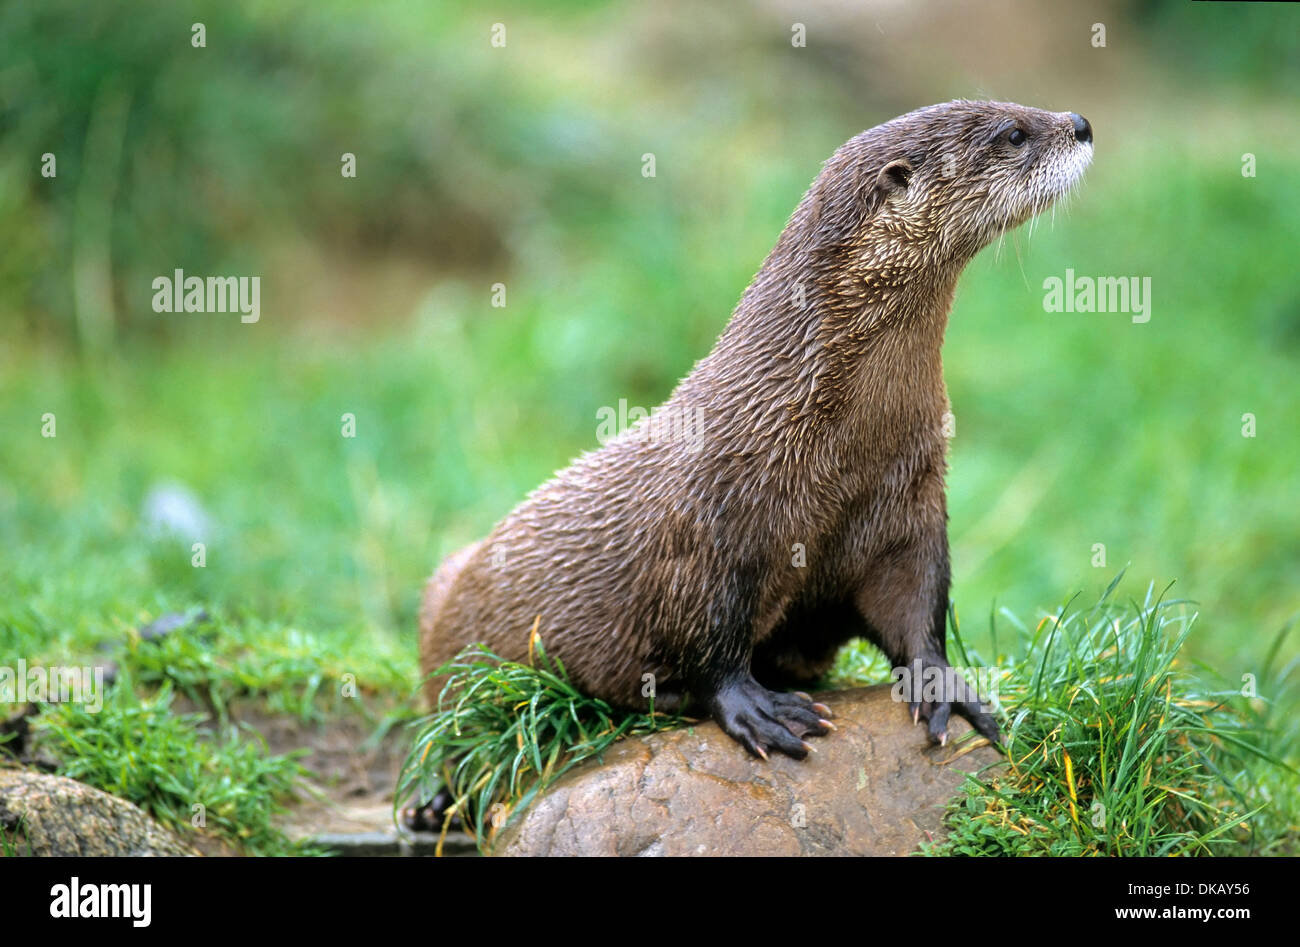 North American river otter (Lontra canadensis), northern river otter, common otter Stock Photo